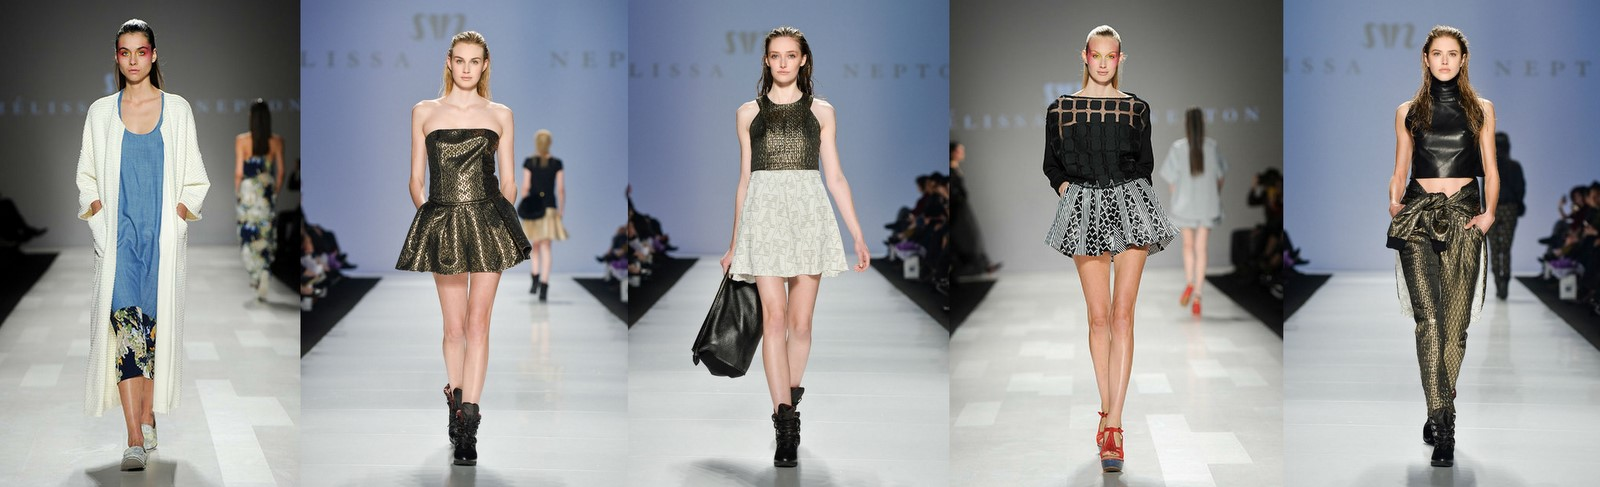 WMCFW-fall-winter-collections1